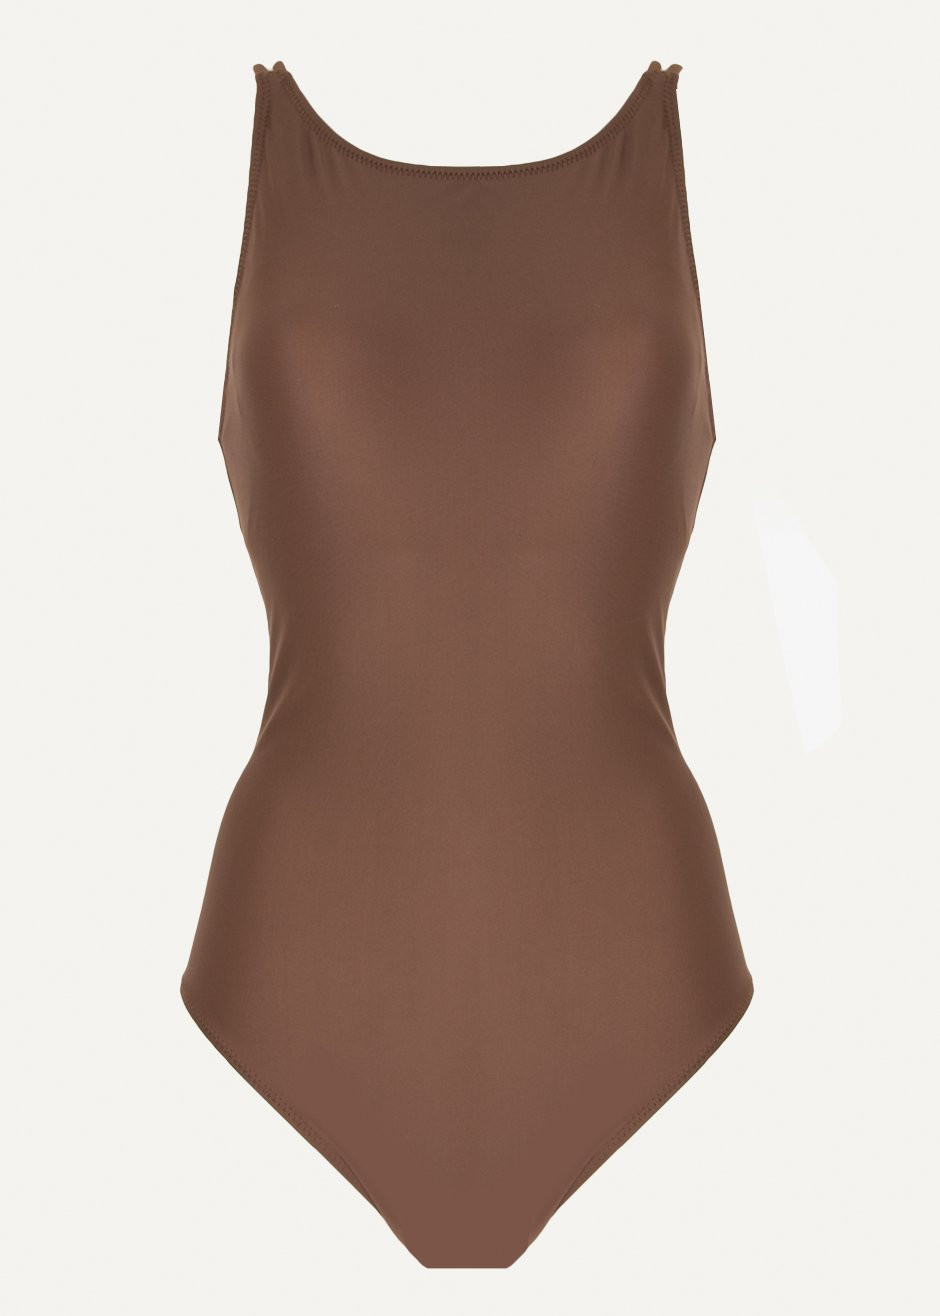 Frankie Shop Chestnut One Piece Swimsuit $95